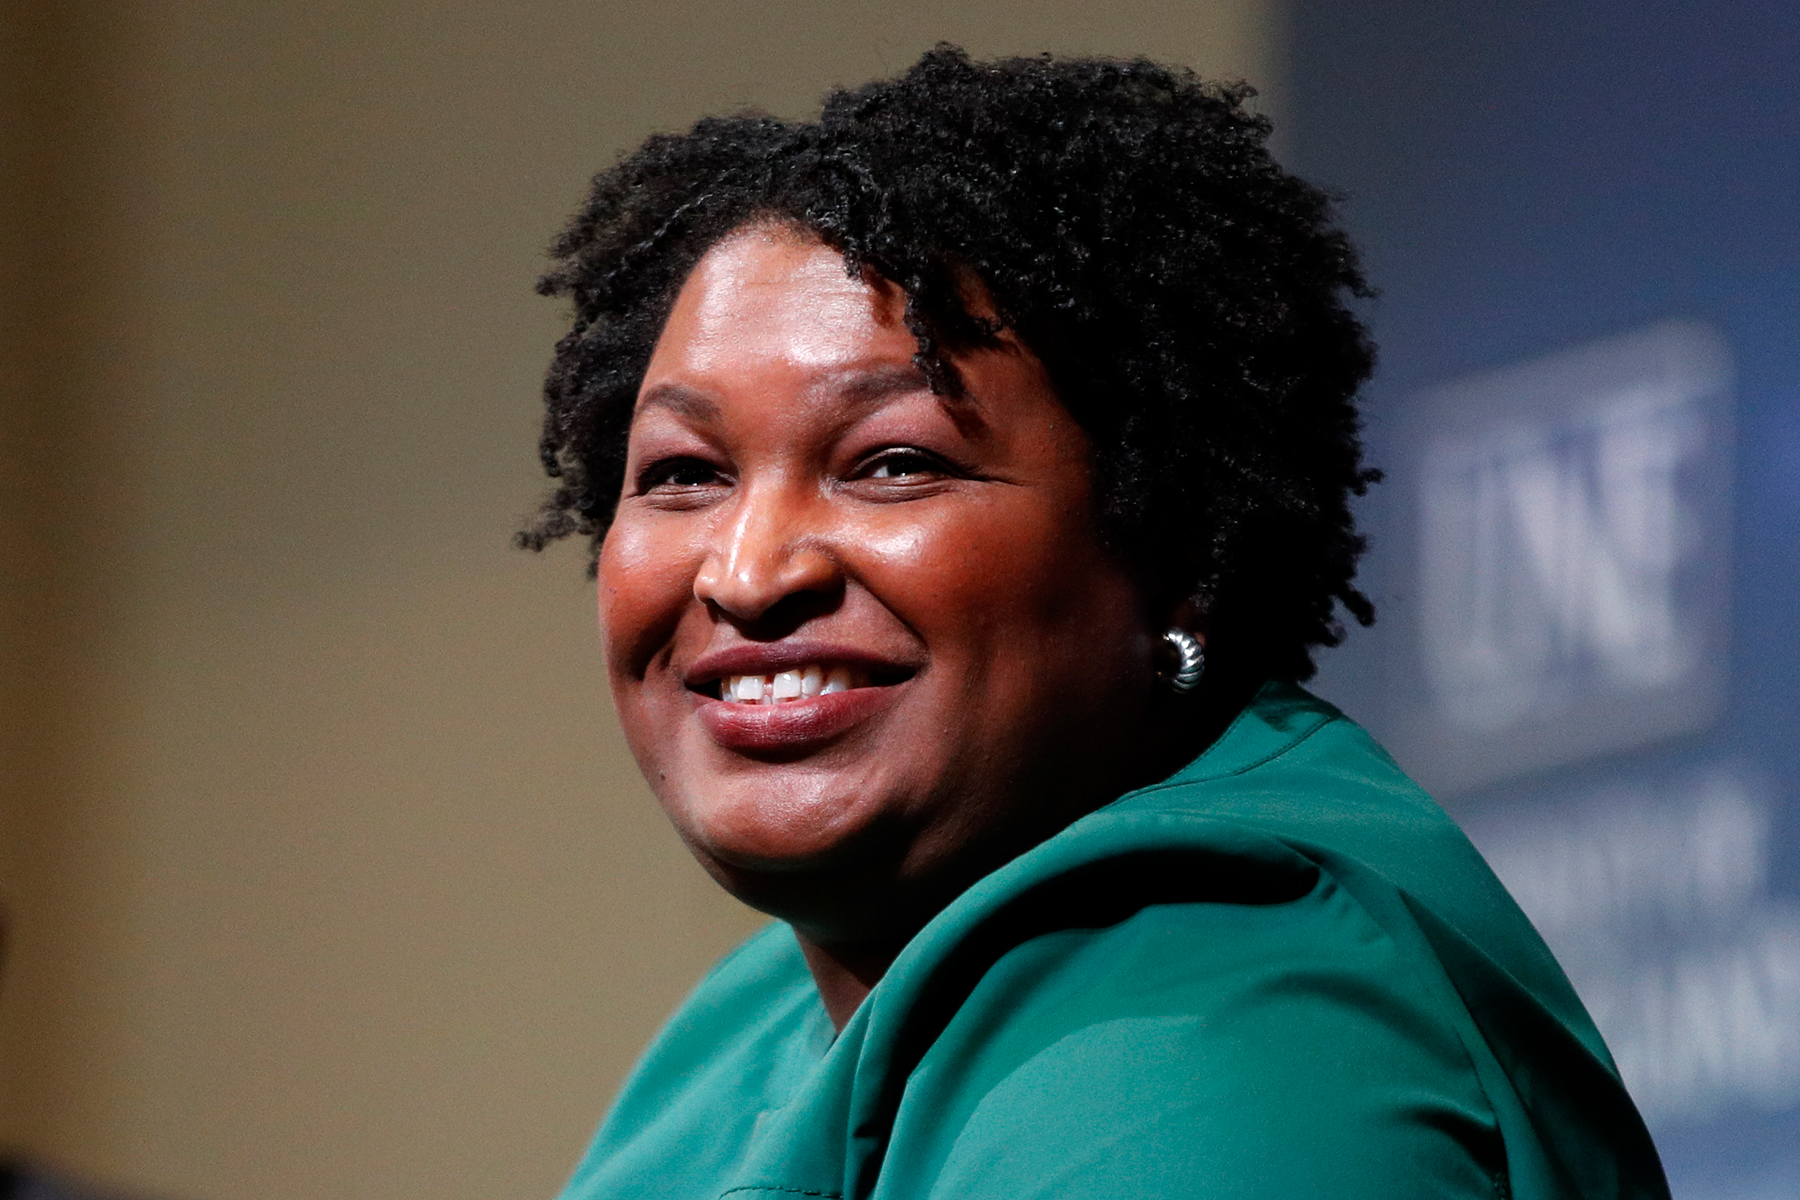 Stacey Abrams Addresses People's Concerns About Voting - See The Video